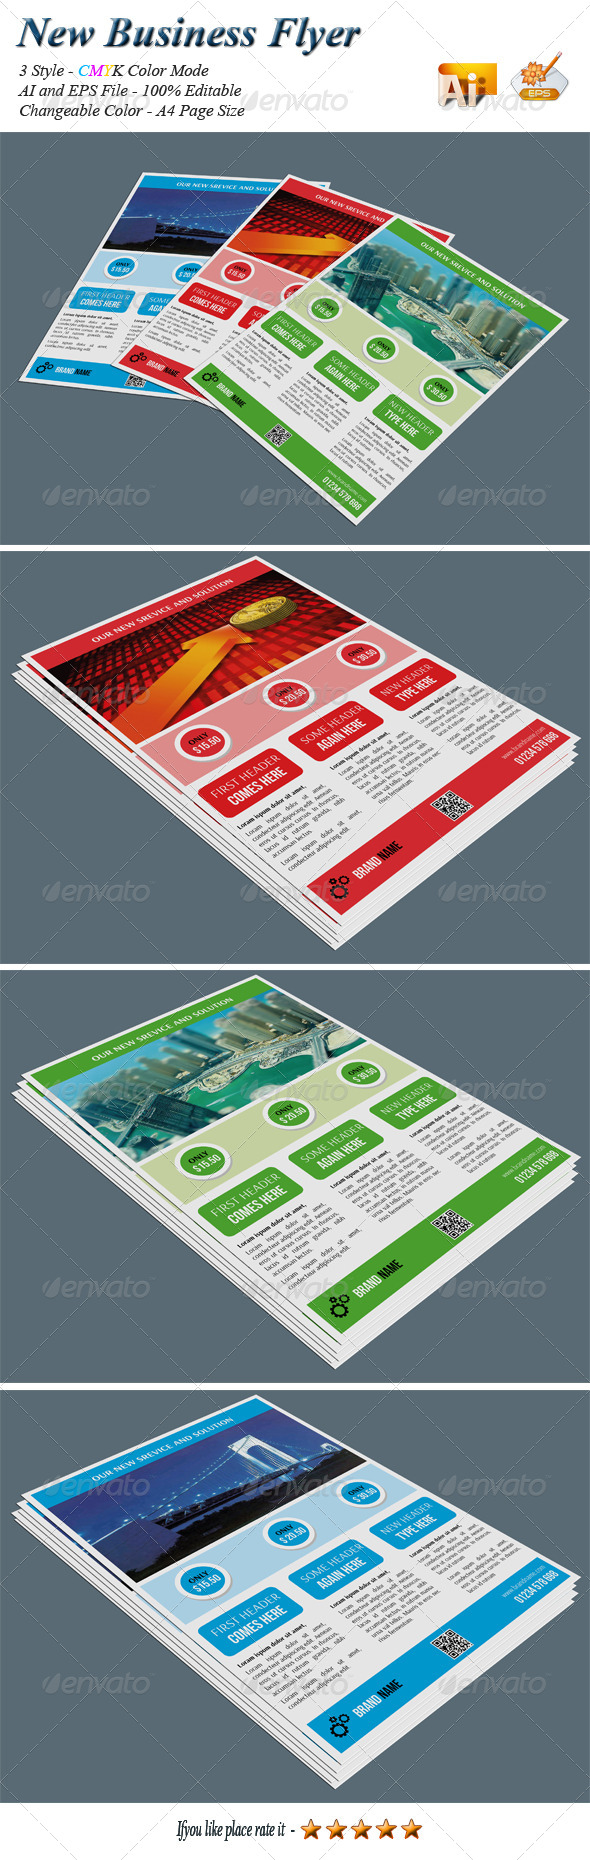 GraphicRiver New Business Flyer 8026346